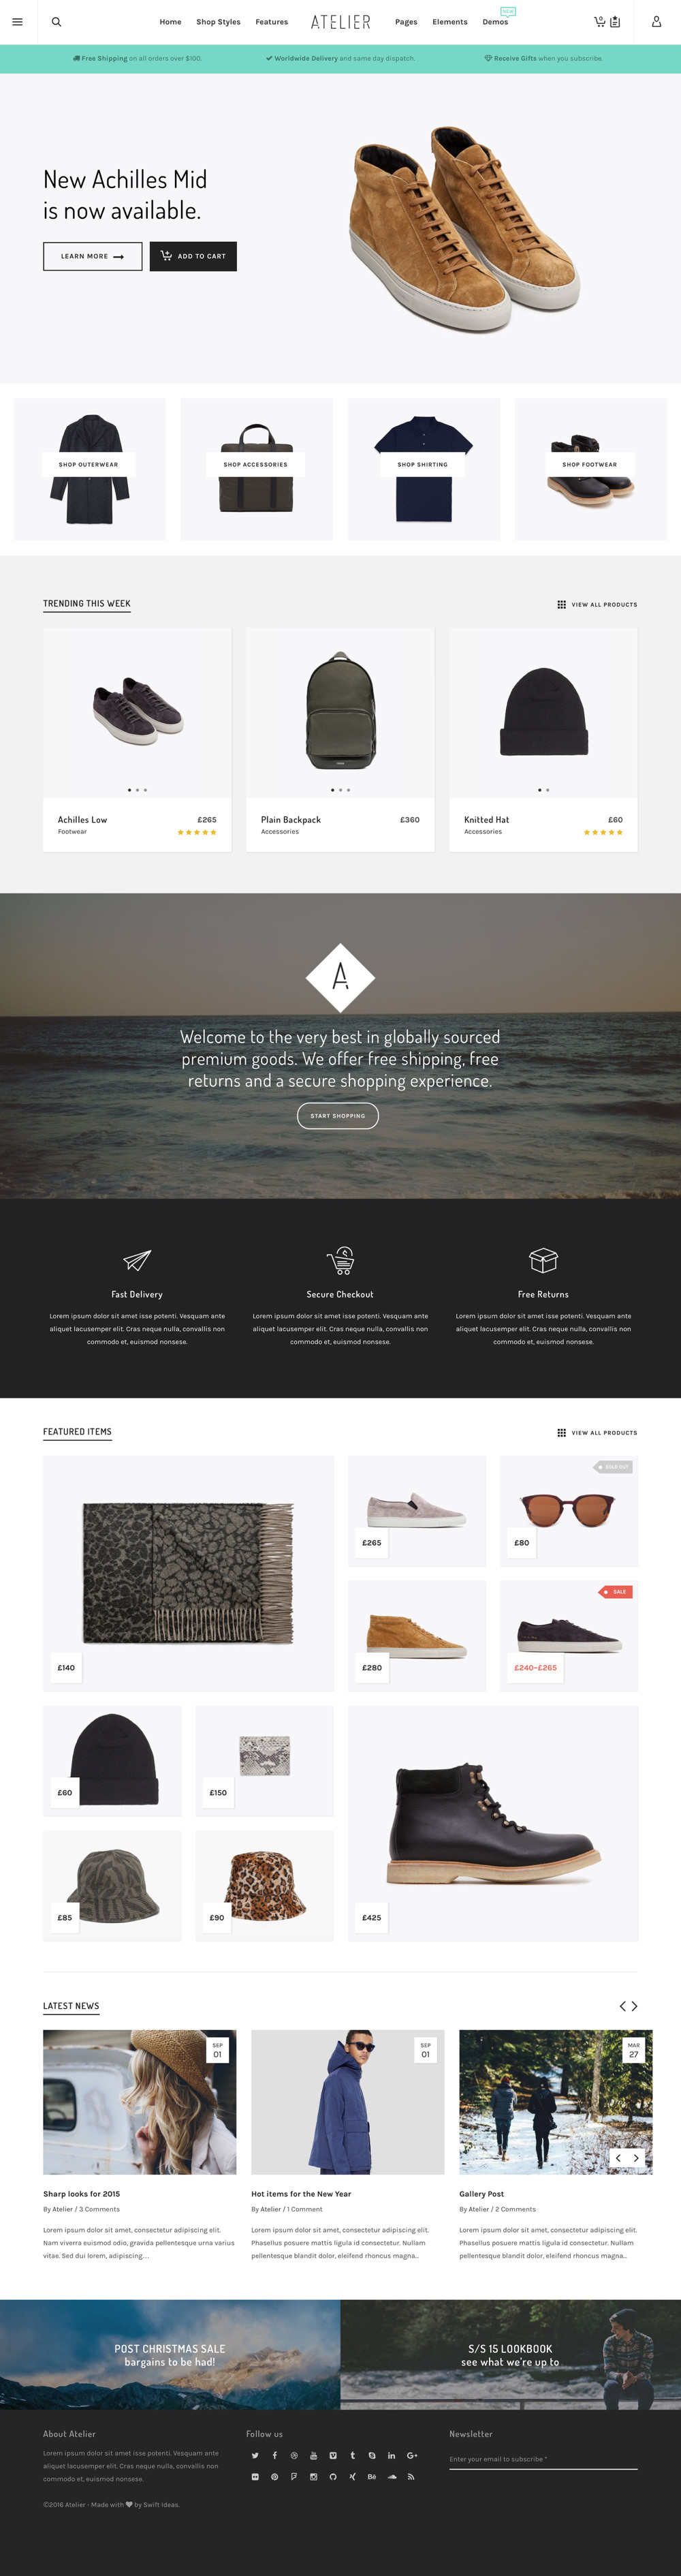 Atelier | Premium WordPress Theme